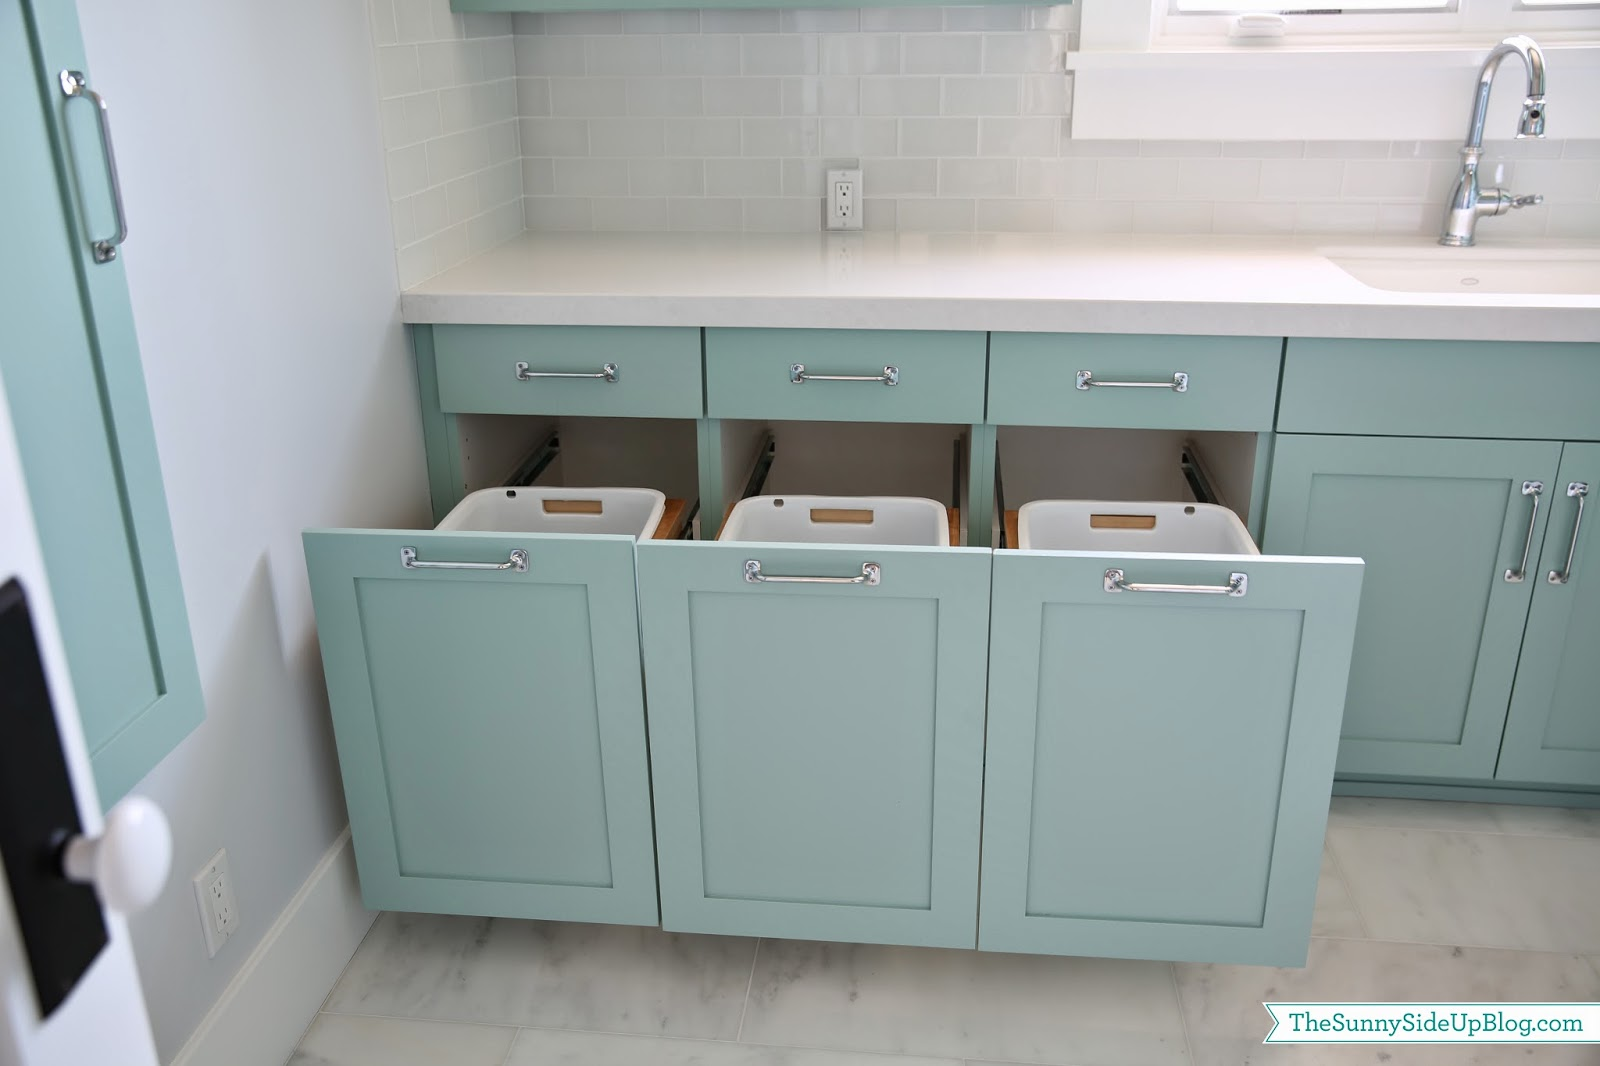 Upstairs Laundry Room - The Sunny Side Up Blog